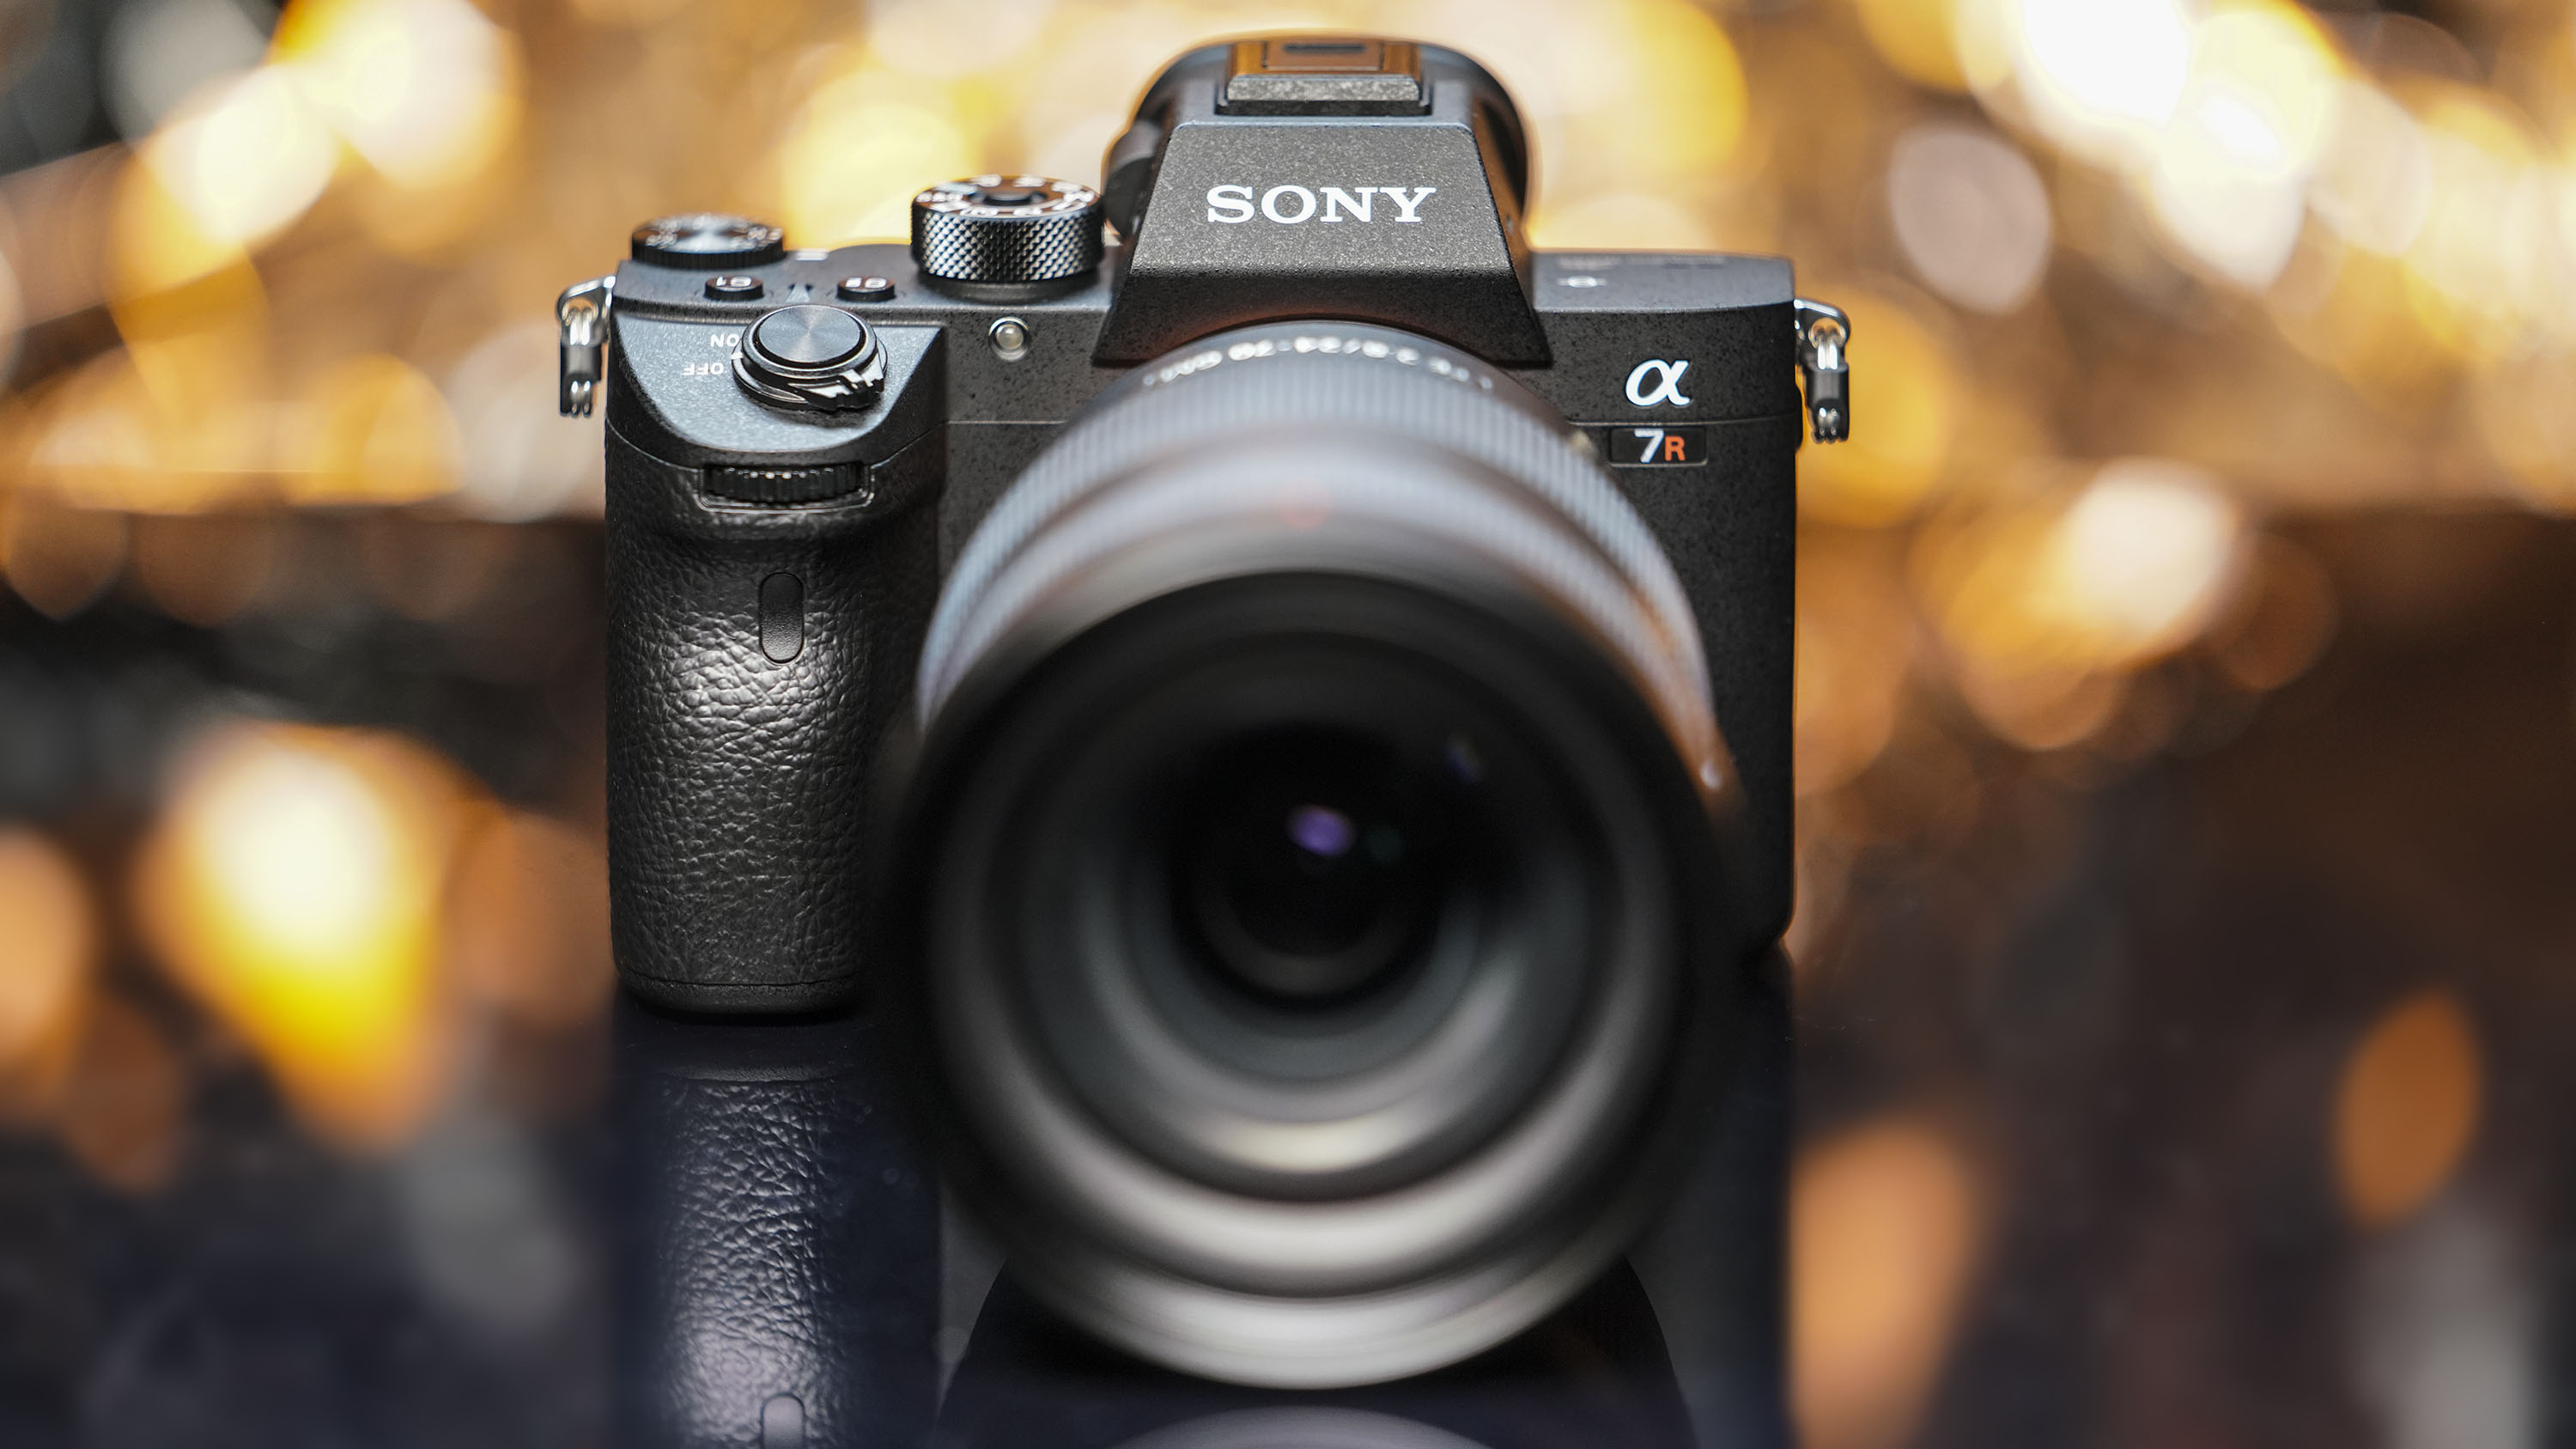 Sony A7R III review: Page 3 | Digital Camera World